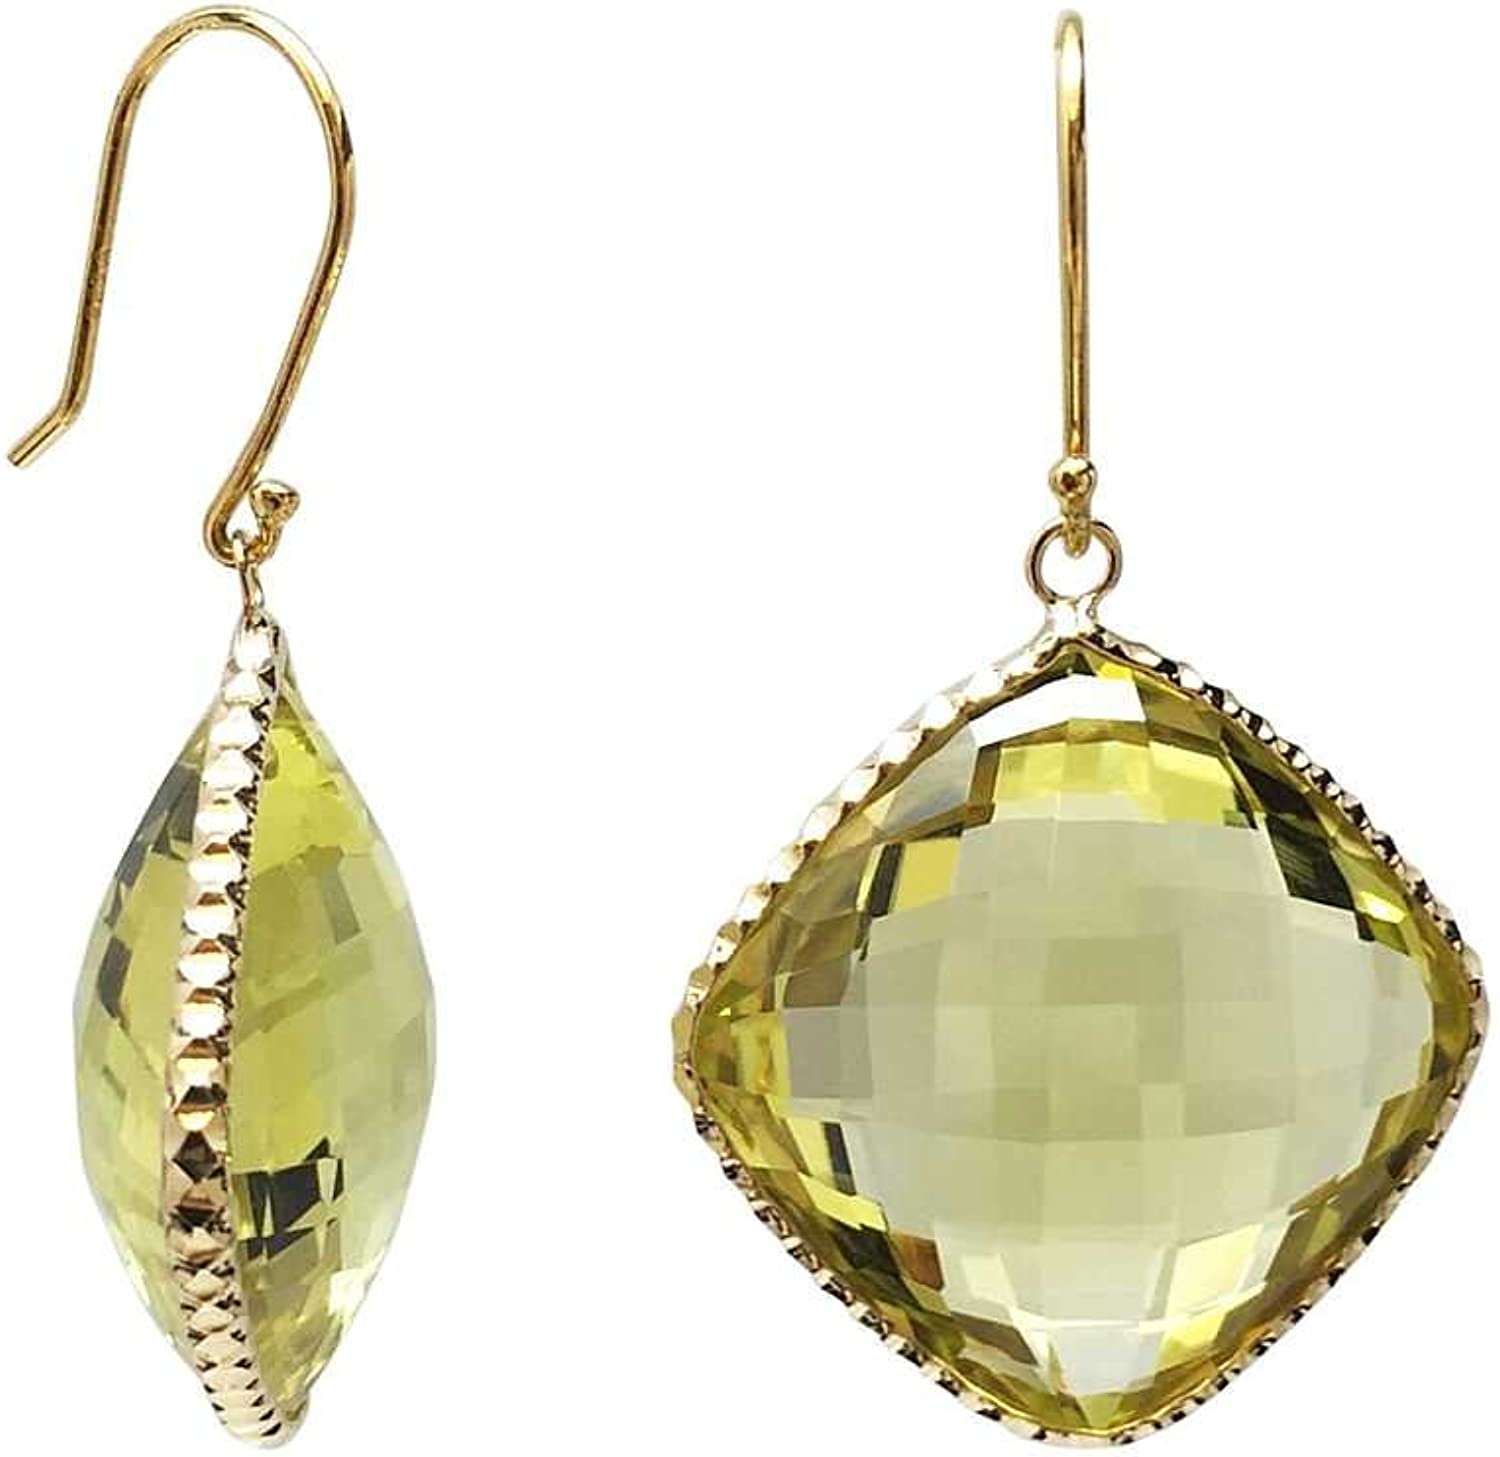 14K Yellow gold Lemon Quartz Cushion 18mm Earrings